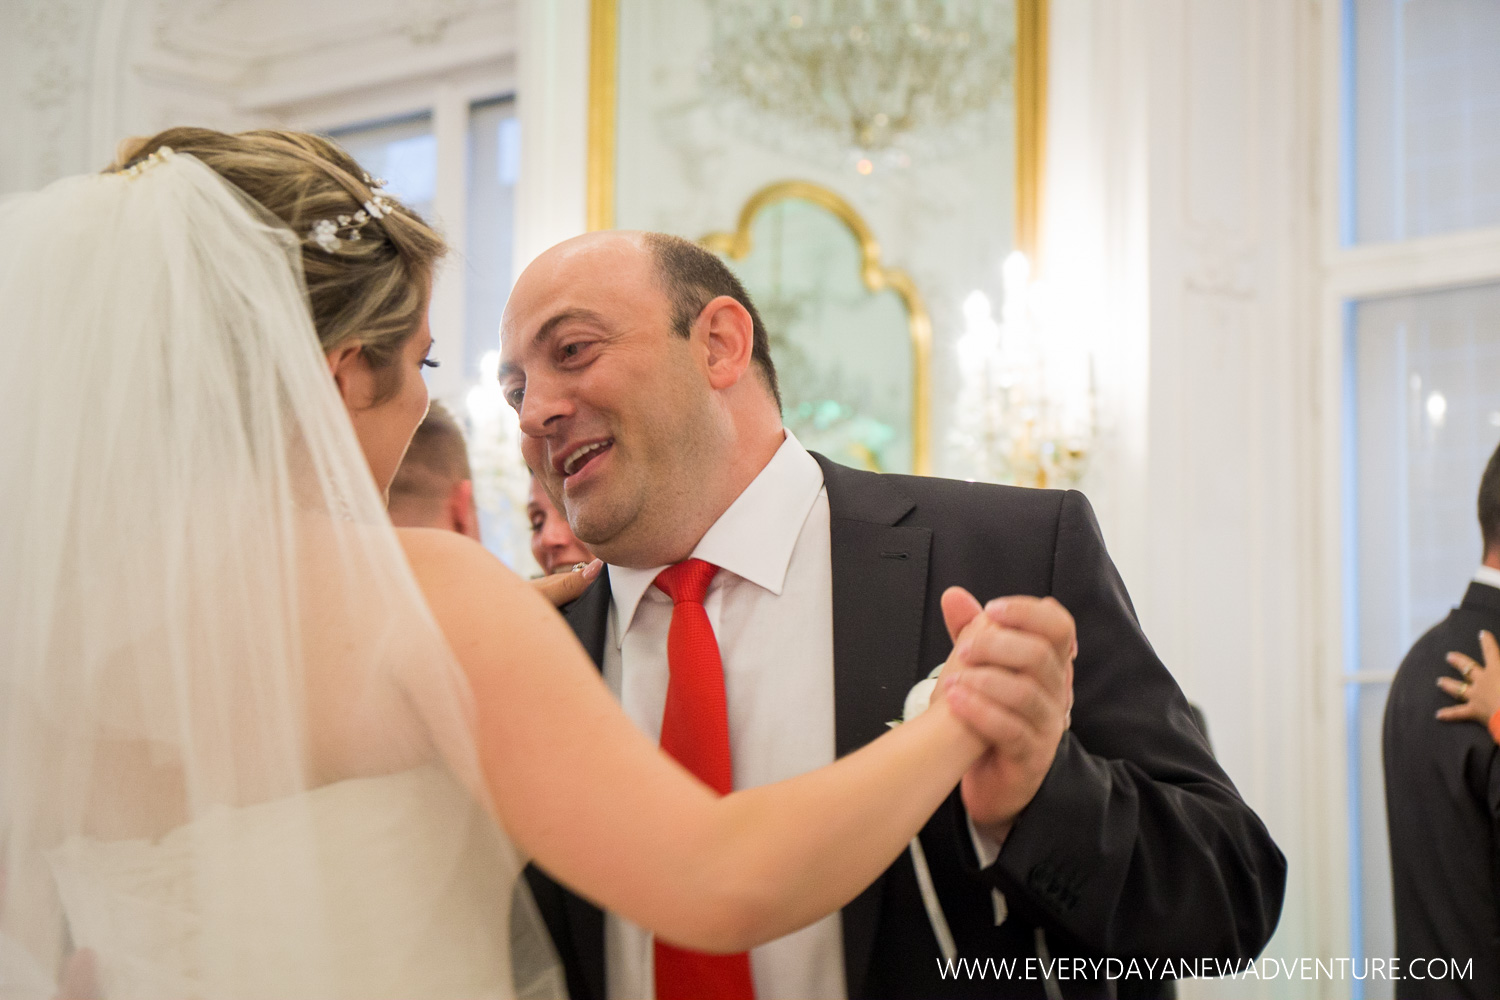 [SqSp1500-030] Budapest - Inez and Arni's Wedding!-261.jpg